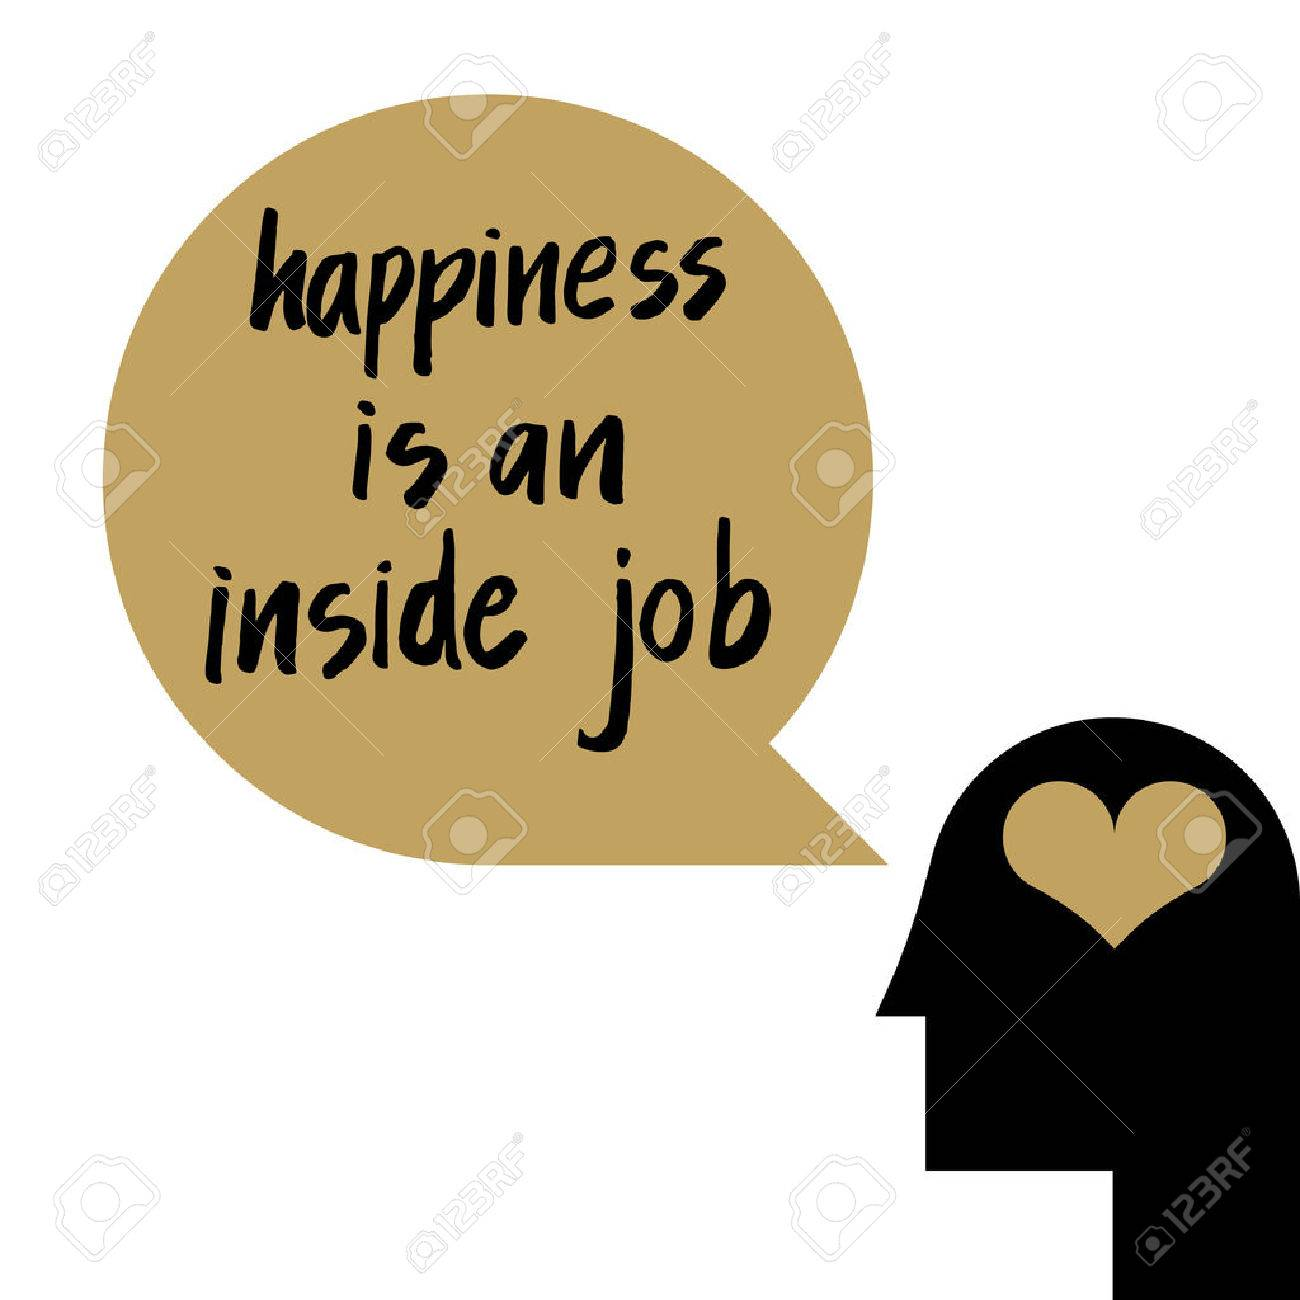 Happiness Is An Inside Job Quote Illustration For Self Esteem Concept In  Psychology Stock Vector